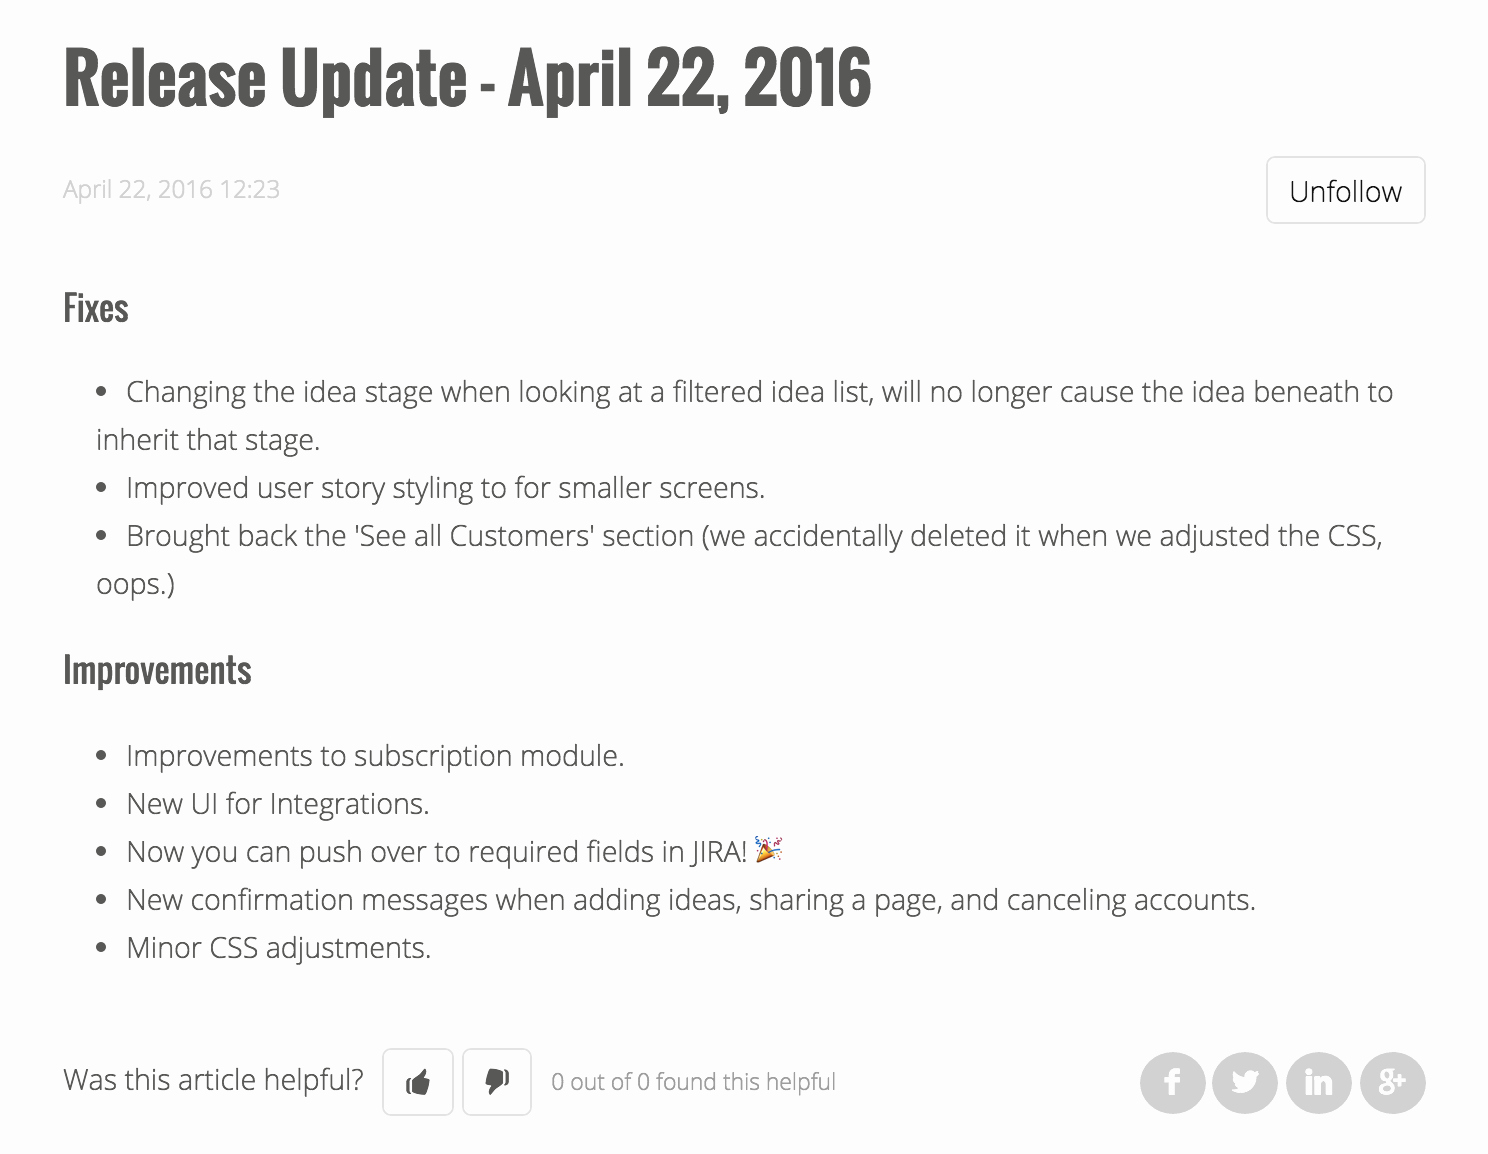 Software Release Notes Template Fresh How to Write Great Release Notes